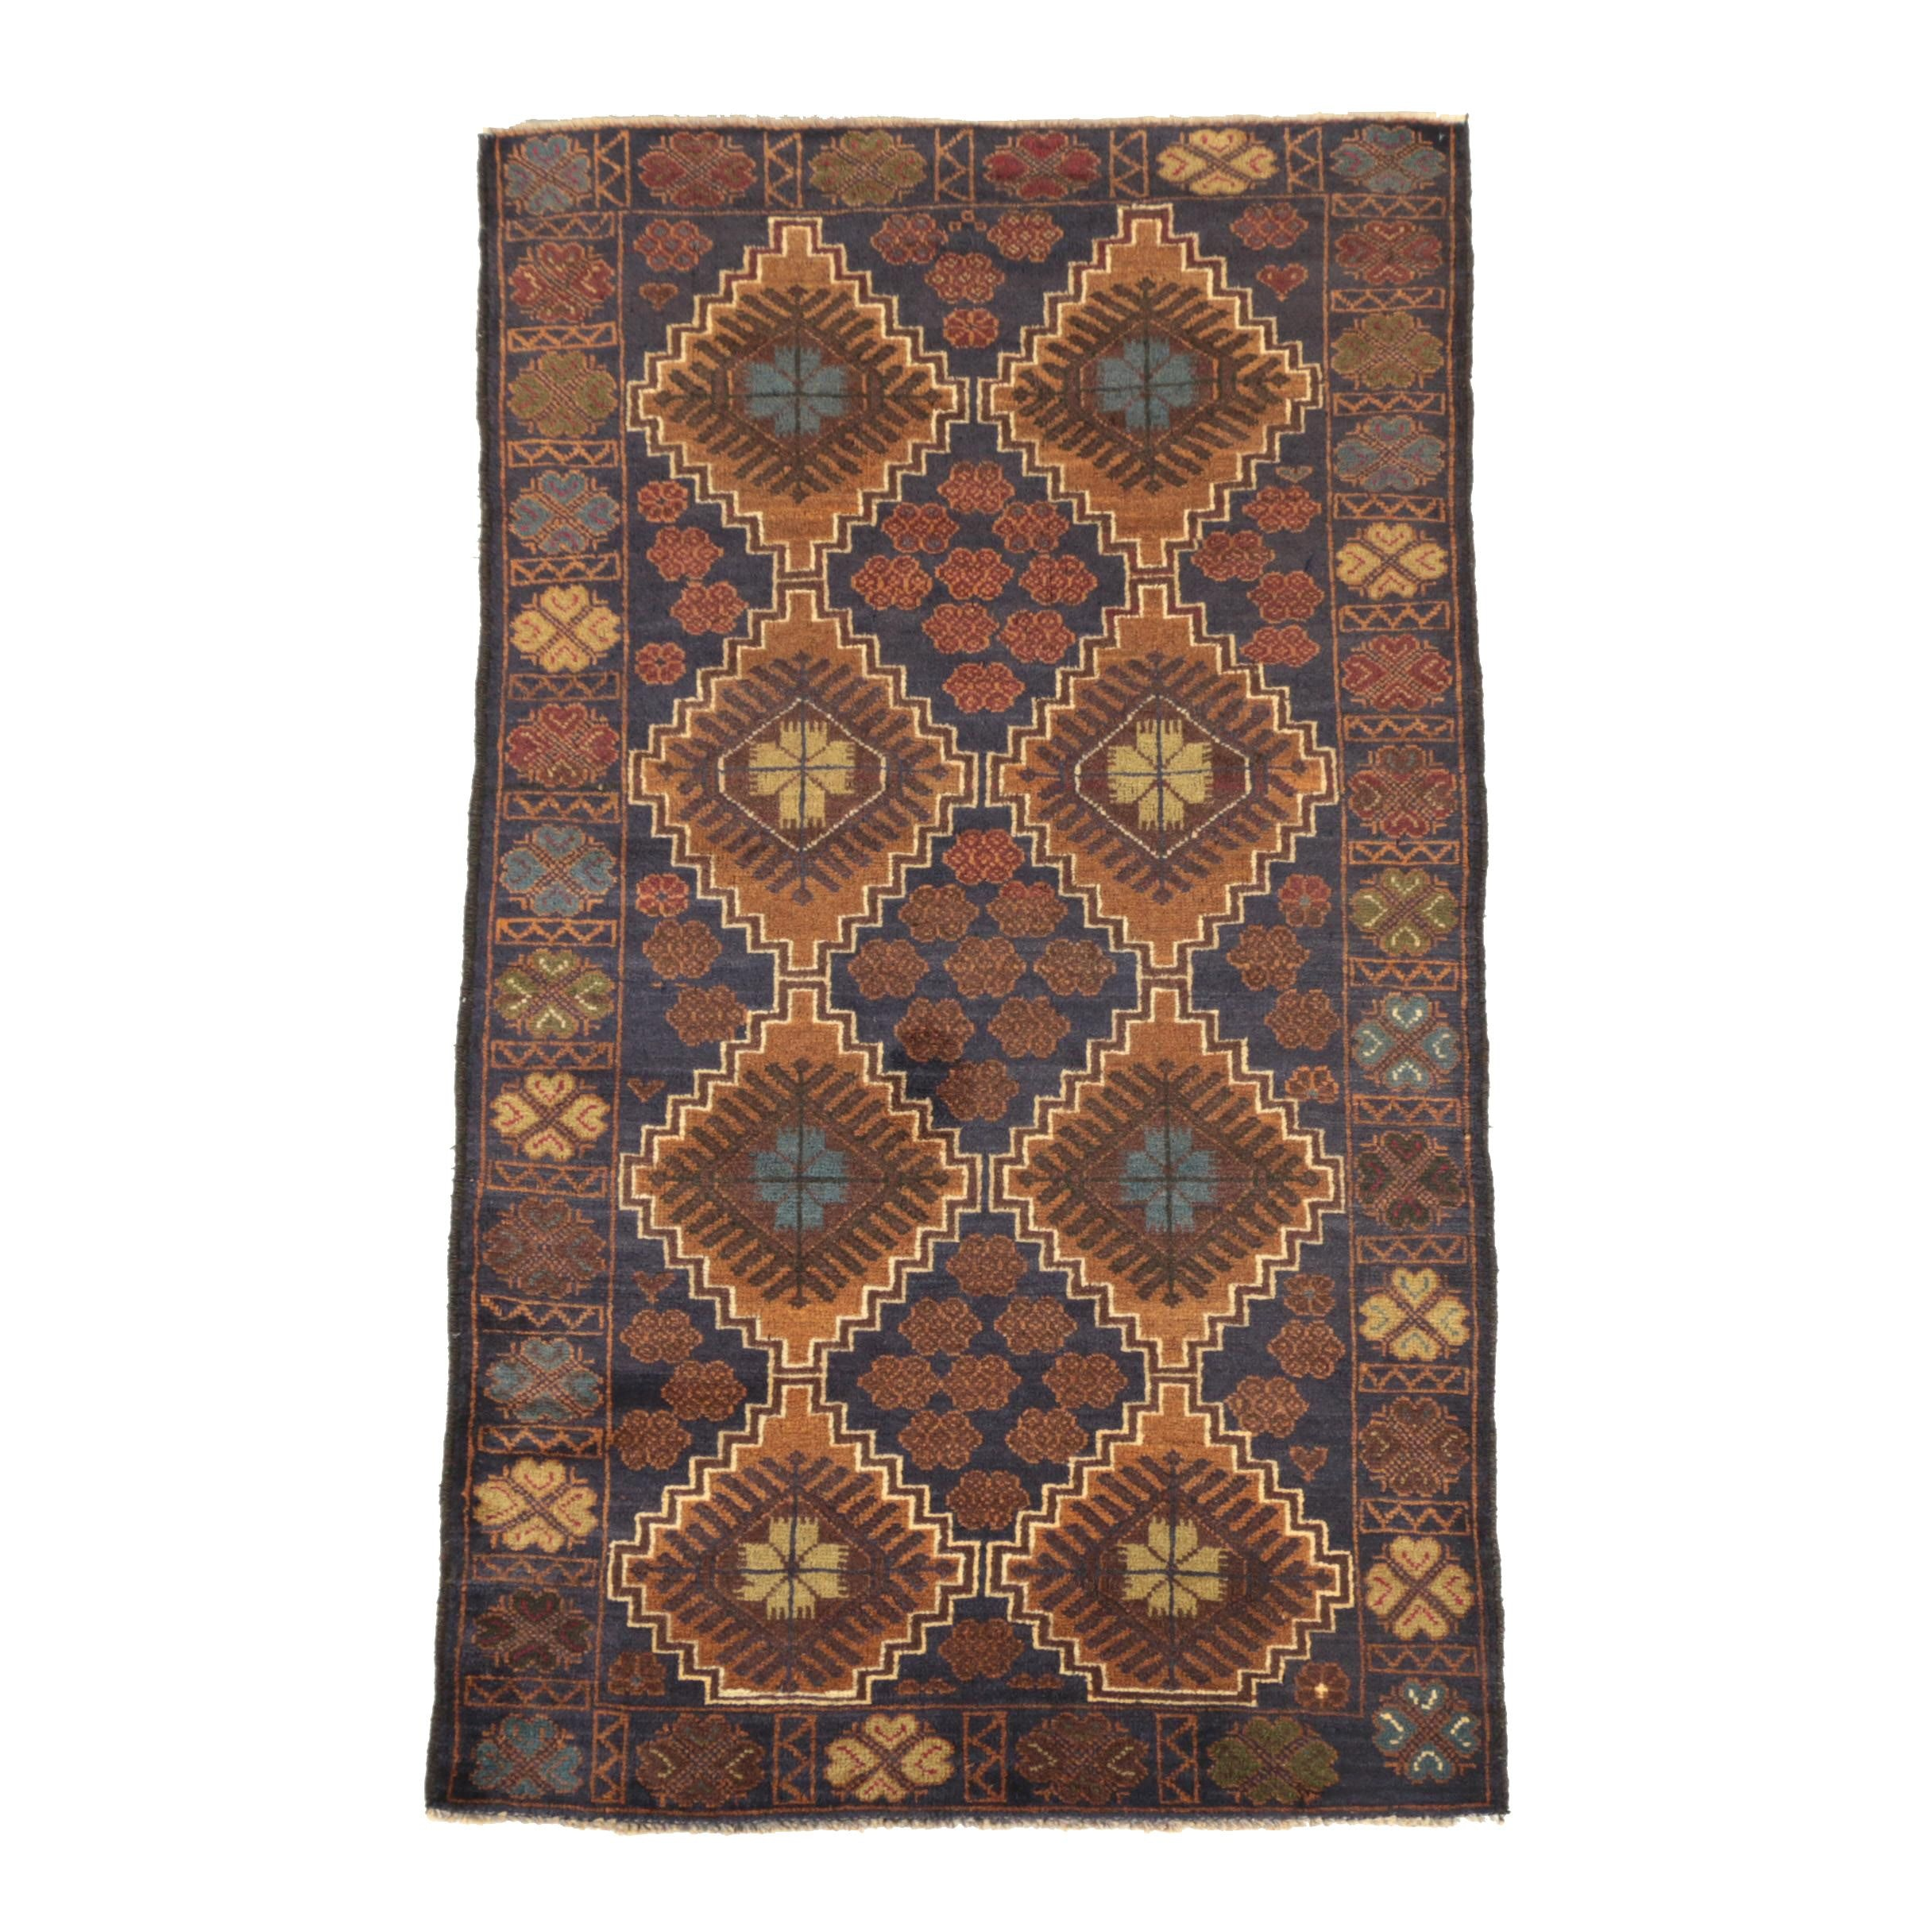 Hand-Knotted Pakistani Wool Area Rug